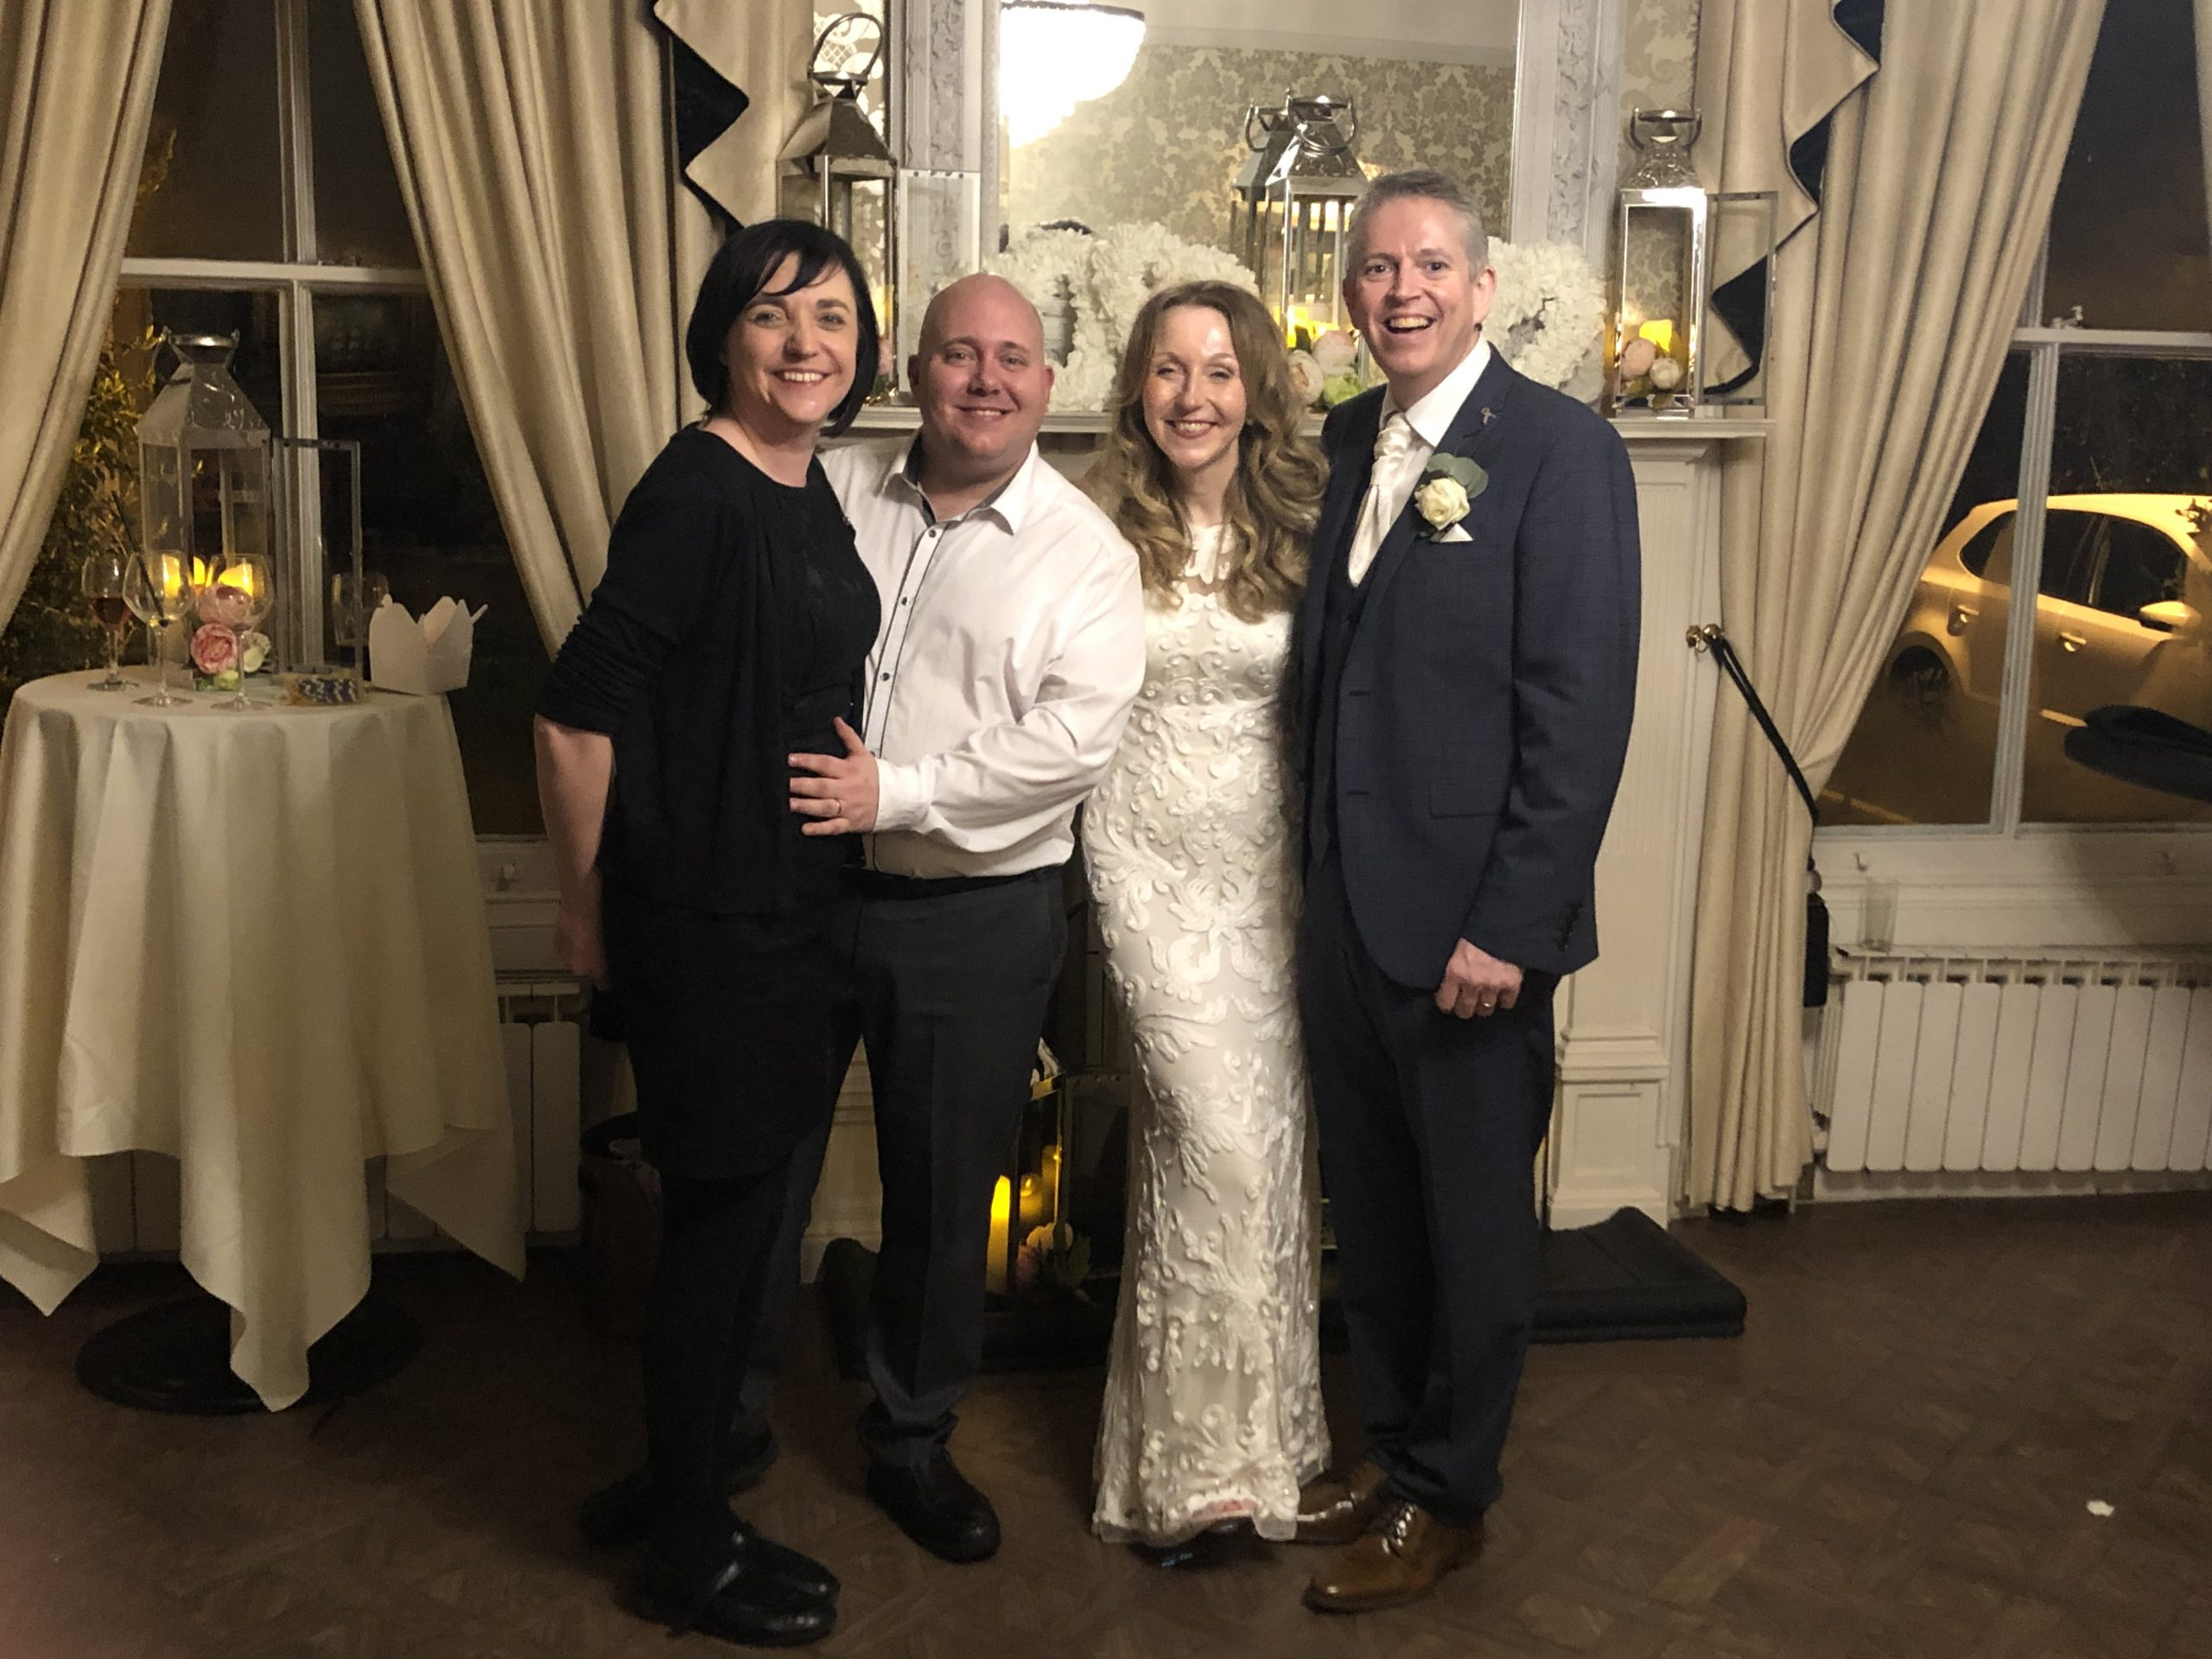 Mark and Liz with Mr and Mrs Zacharias